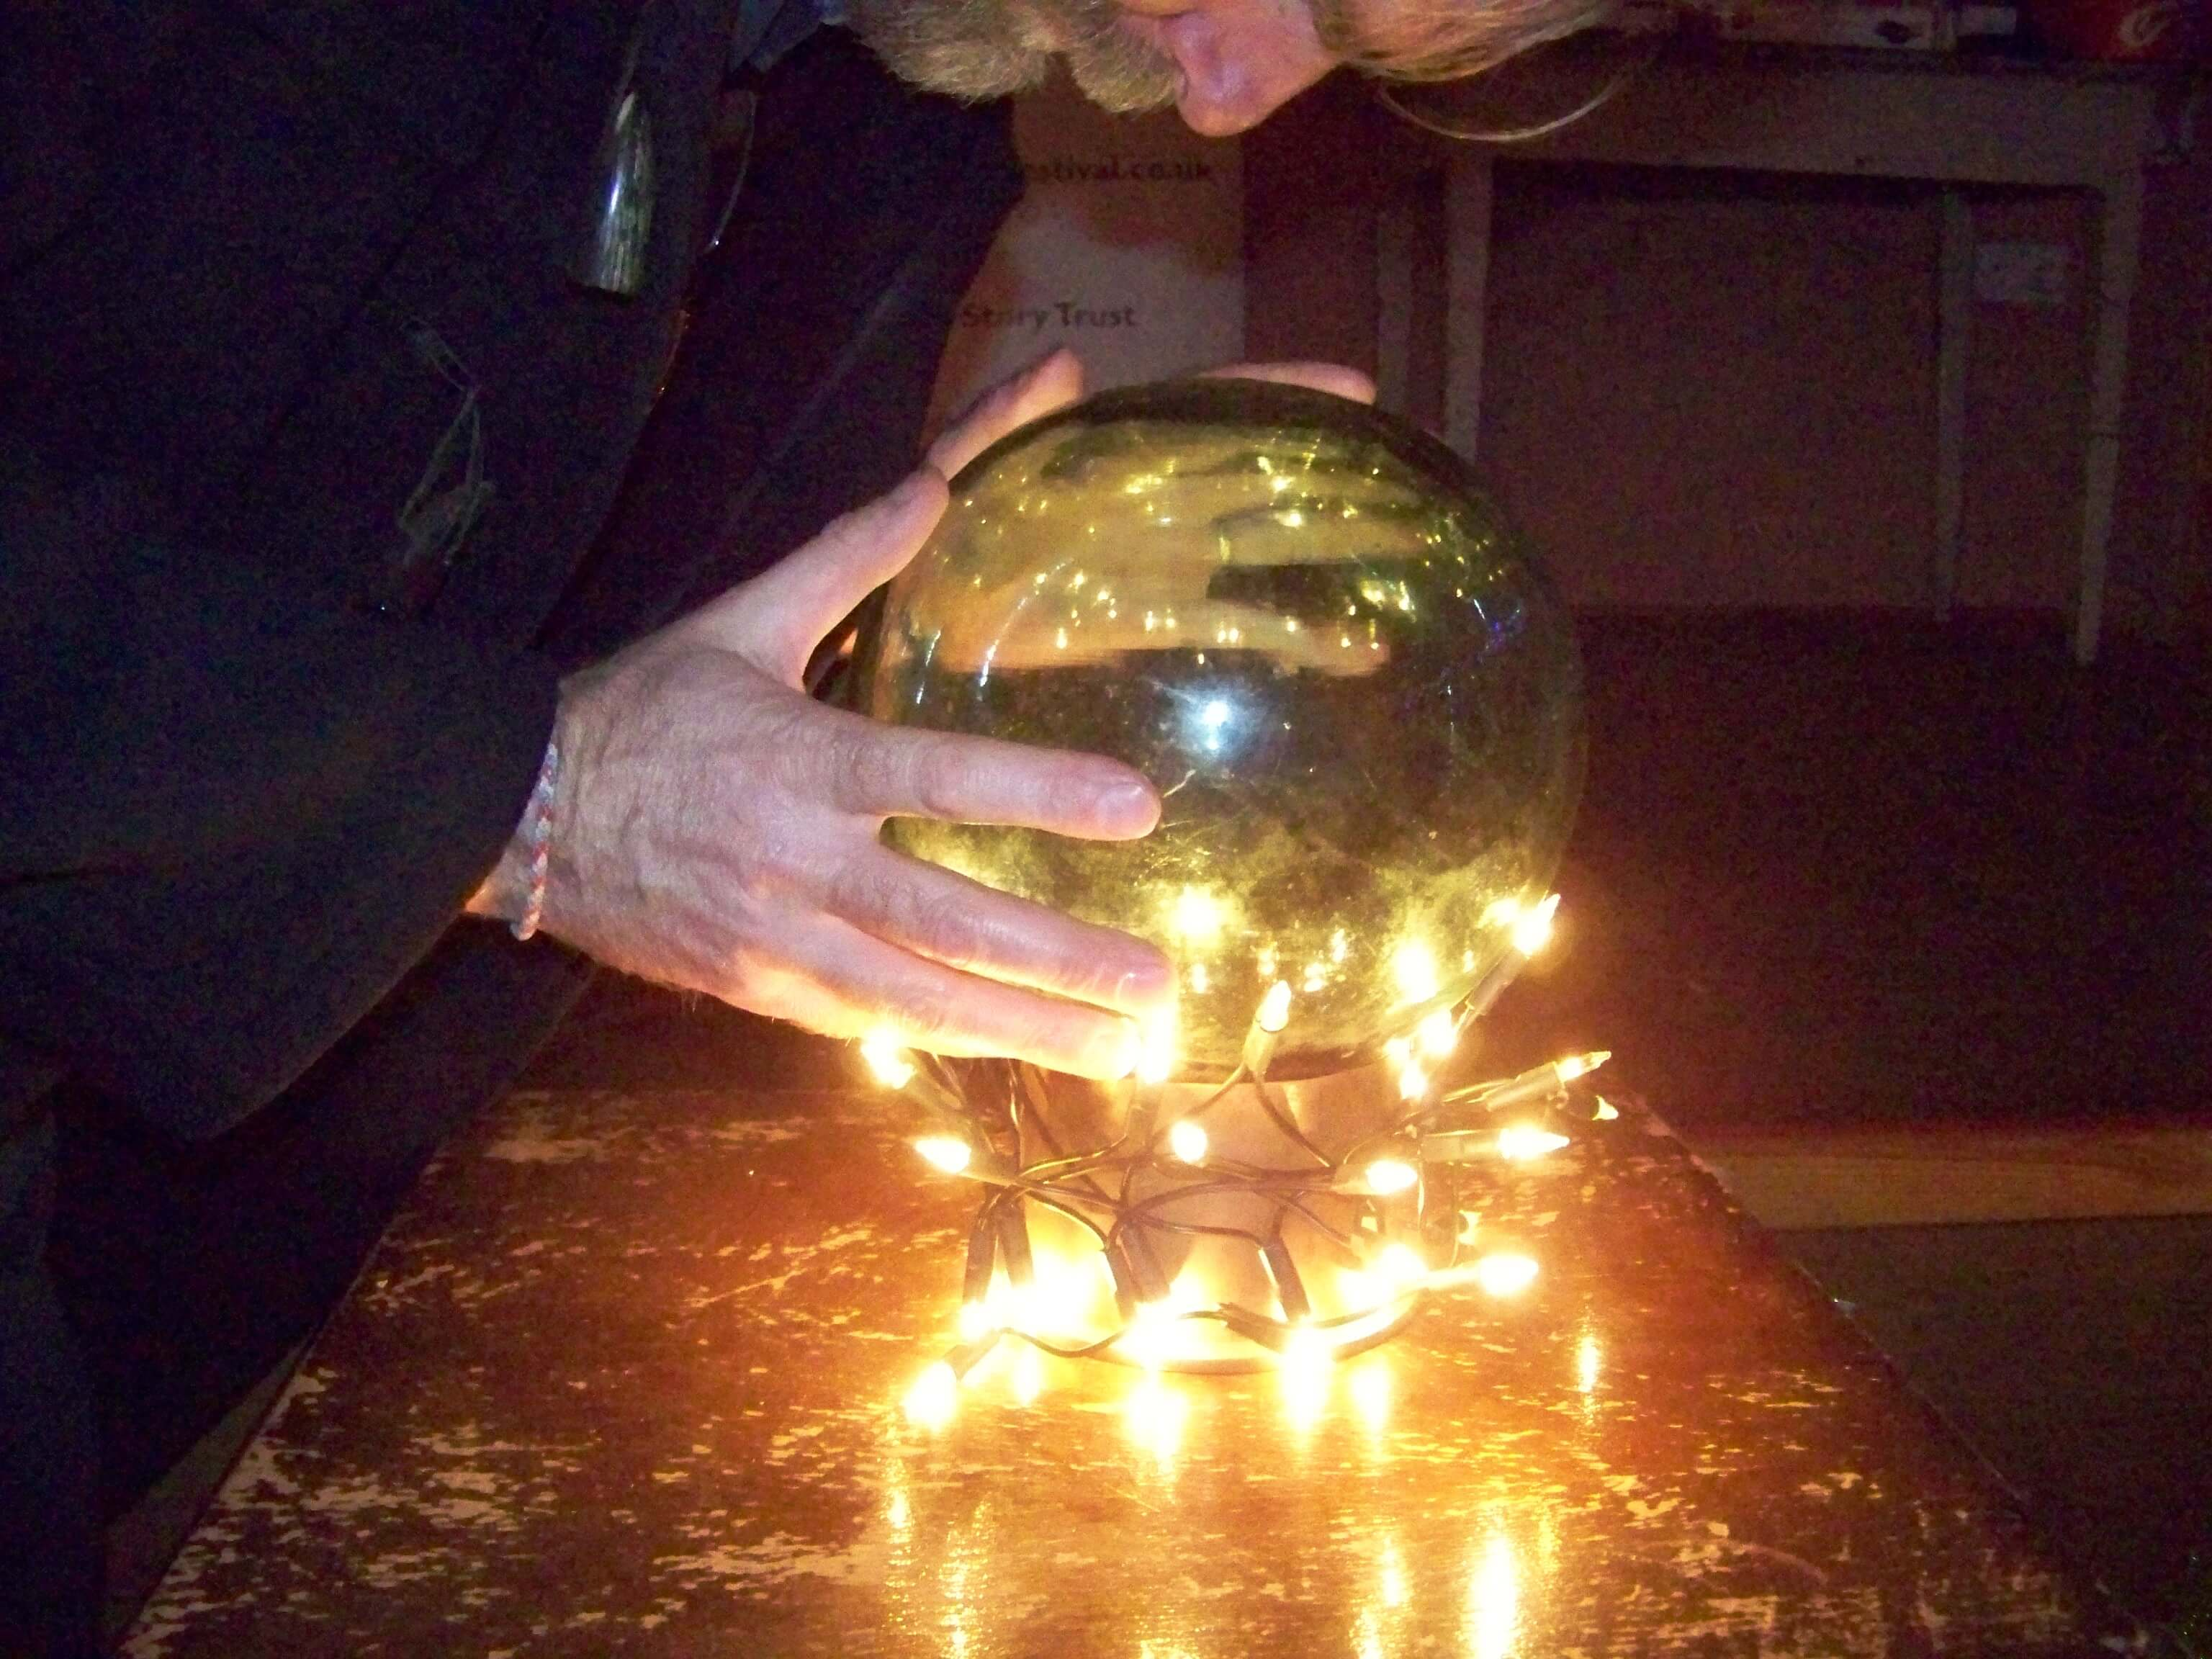 Andrew Hollinrake looks into his crystal ball at a storytelling event in Orkney, Scotland